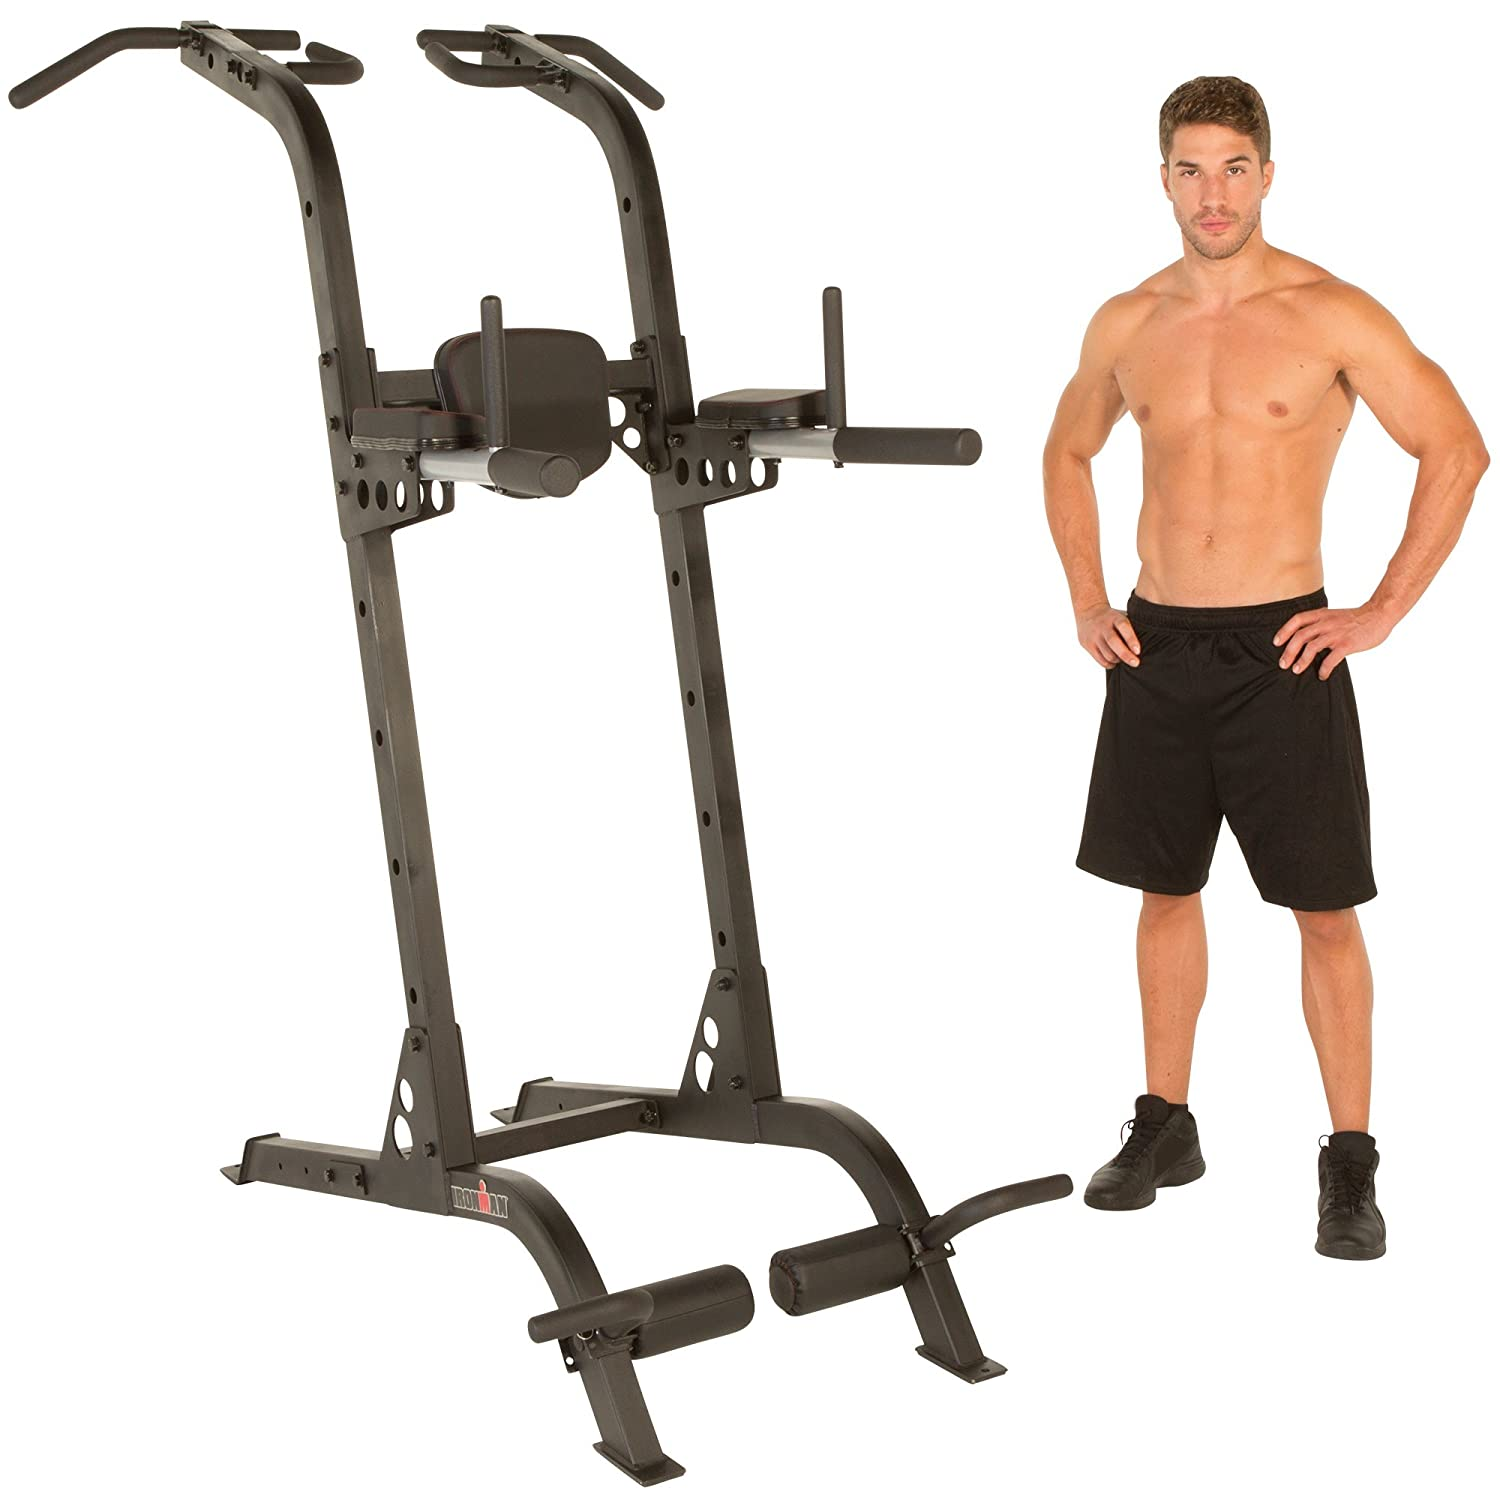 IRONMAN Triathlon X Class Multi-Function Power Tower